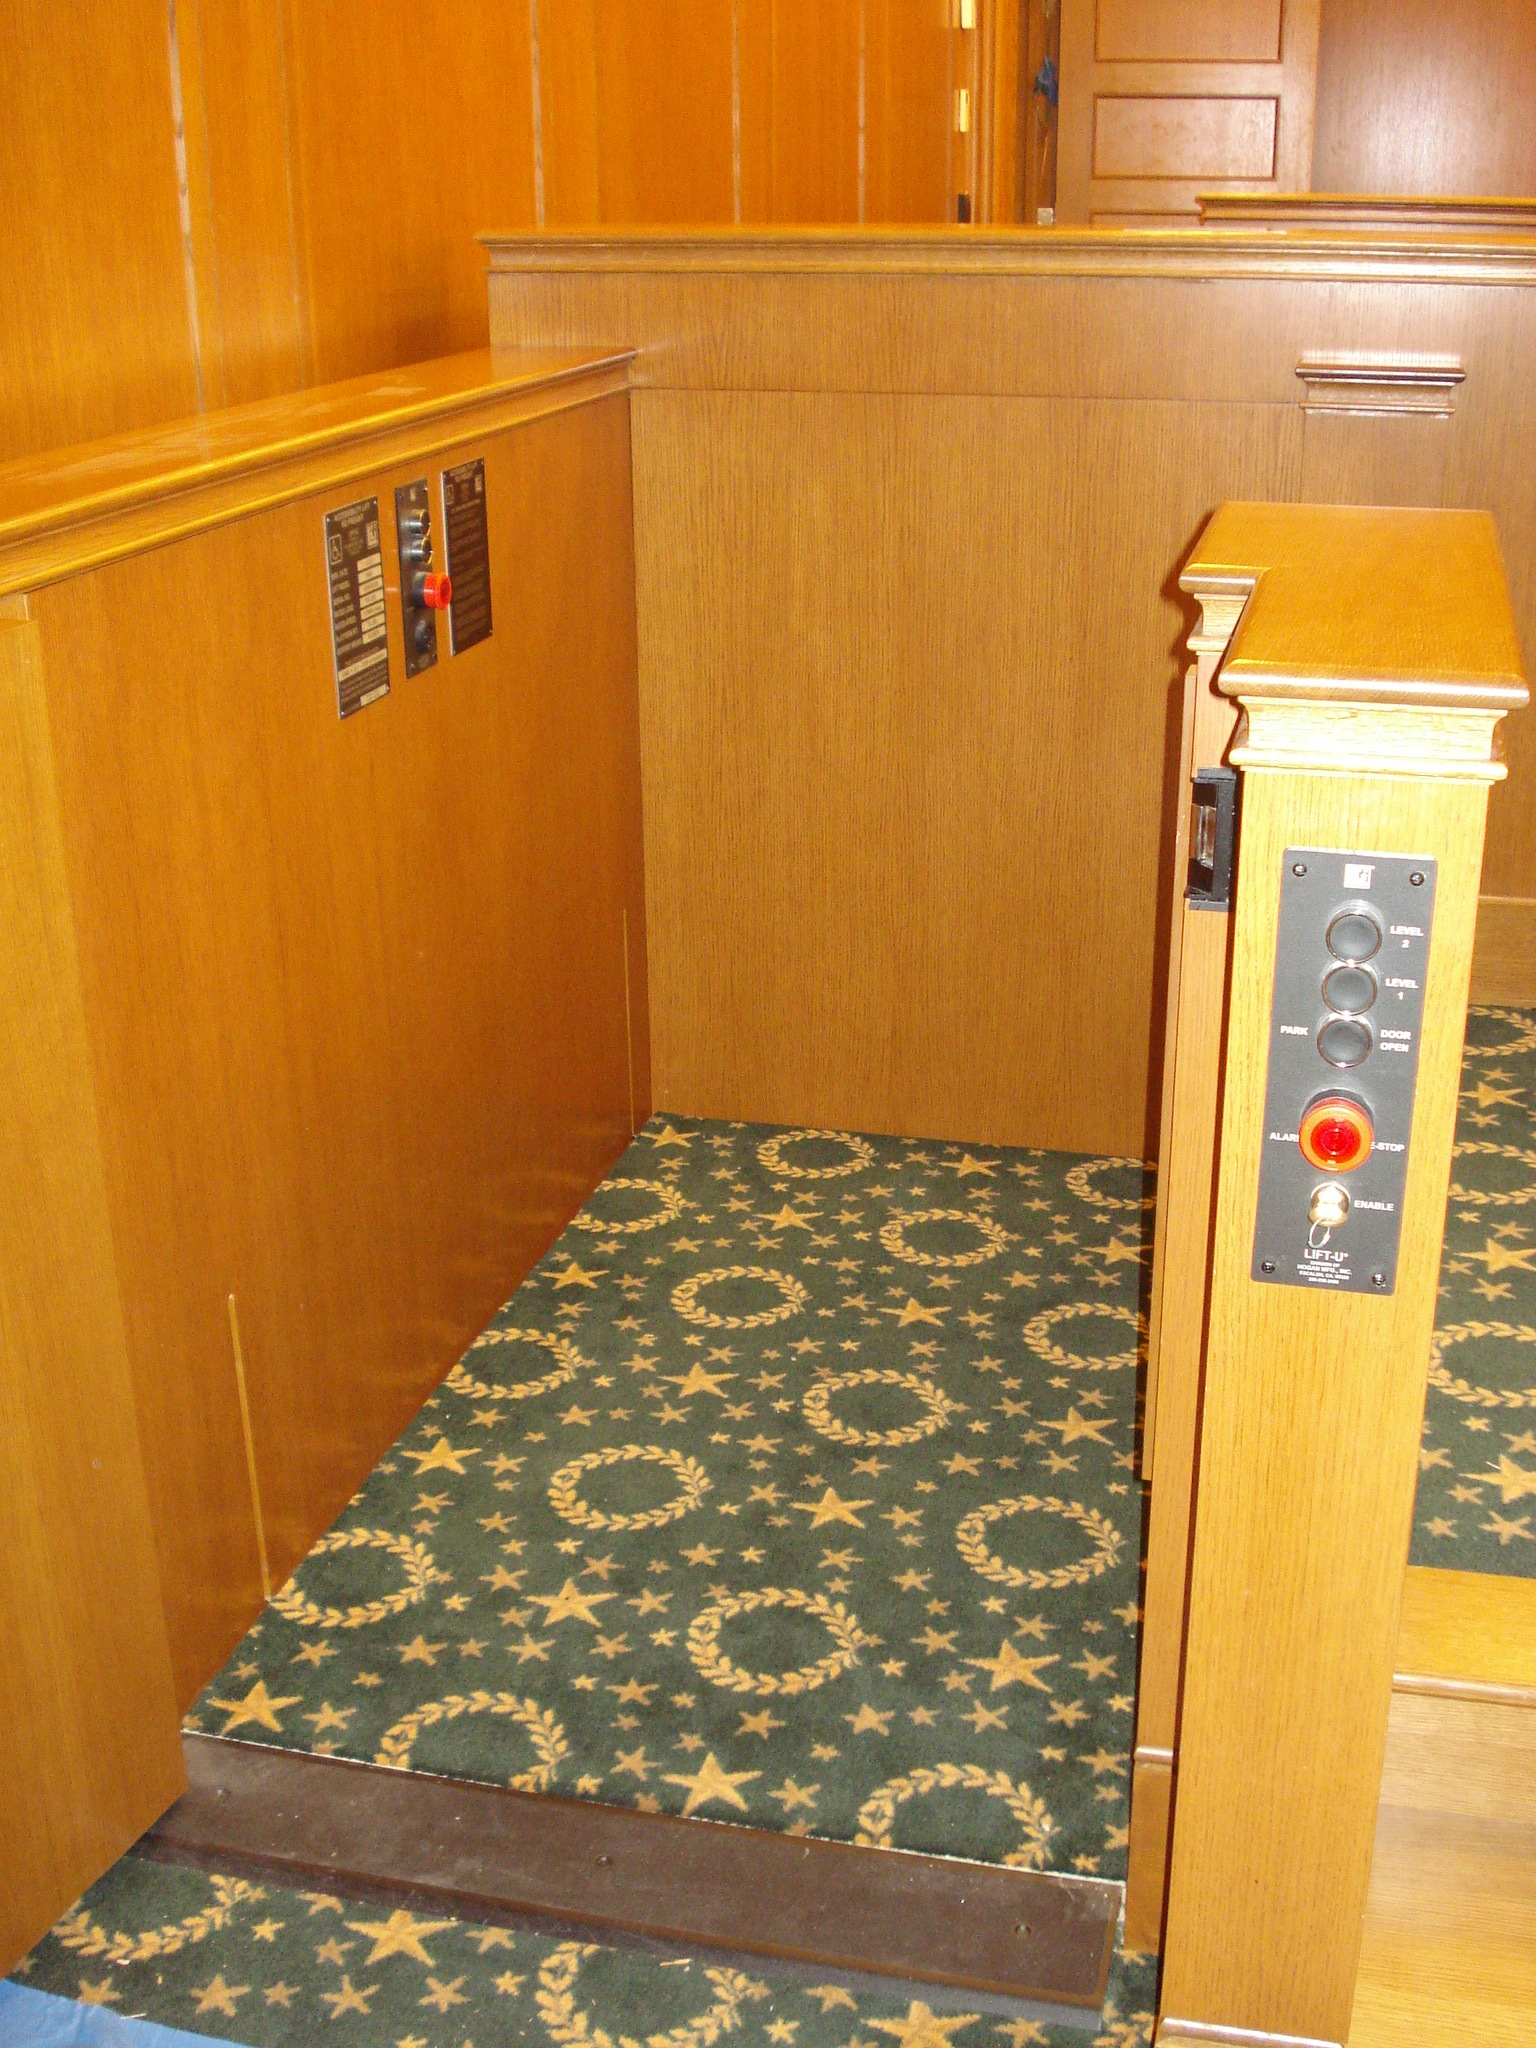 Lift positioned at lower level with lower level door opened. Equipped with threshold ramp to allow wheelchair access when the lift is at the lower level. Lift encased in wood millwork blending in with courtroom millwork. Lift is readily available and independently operable.